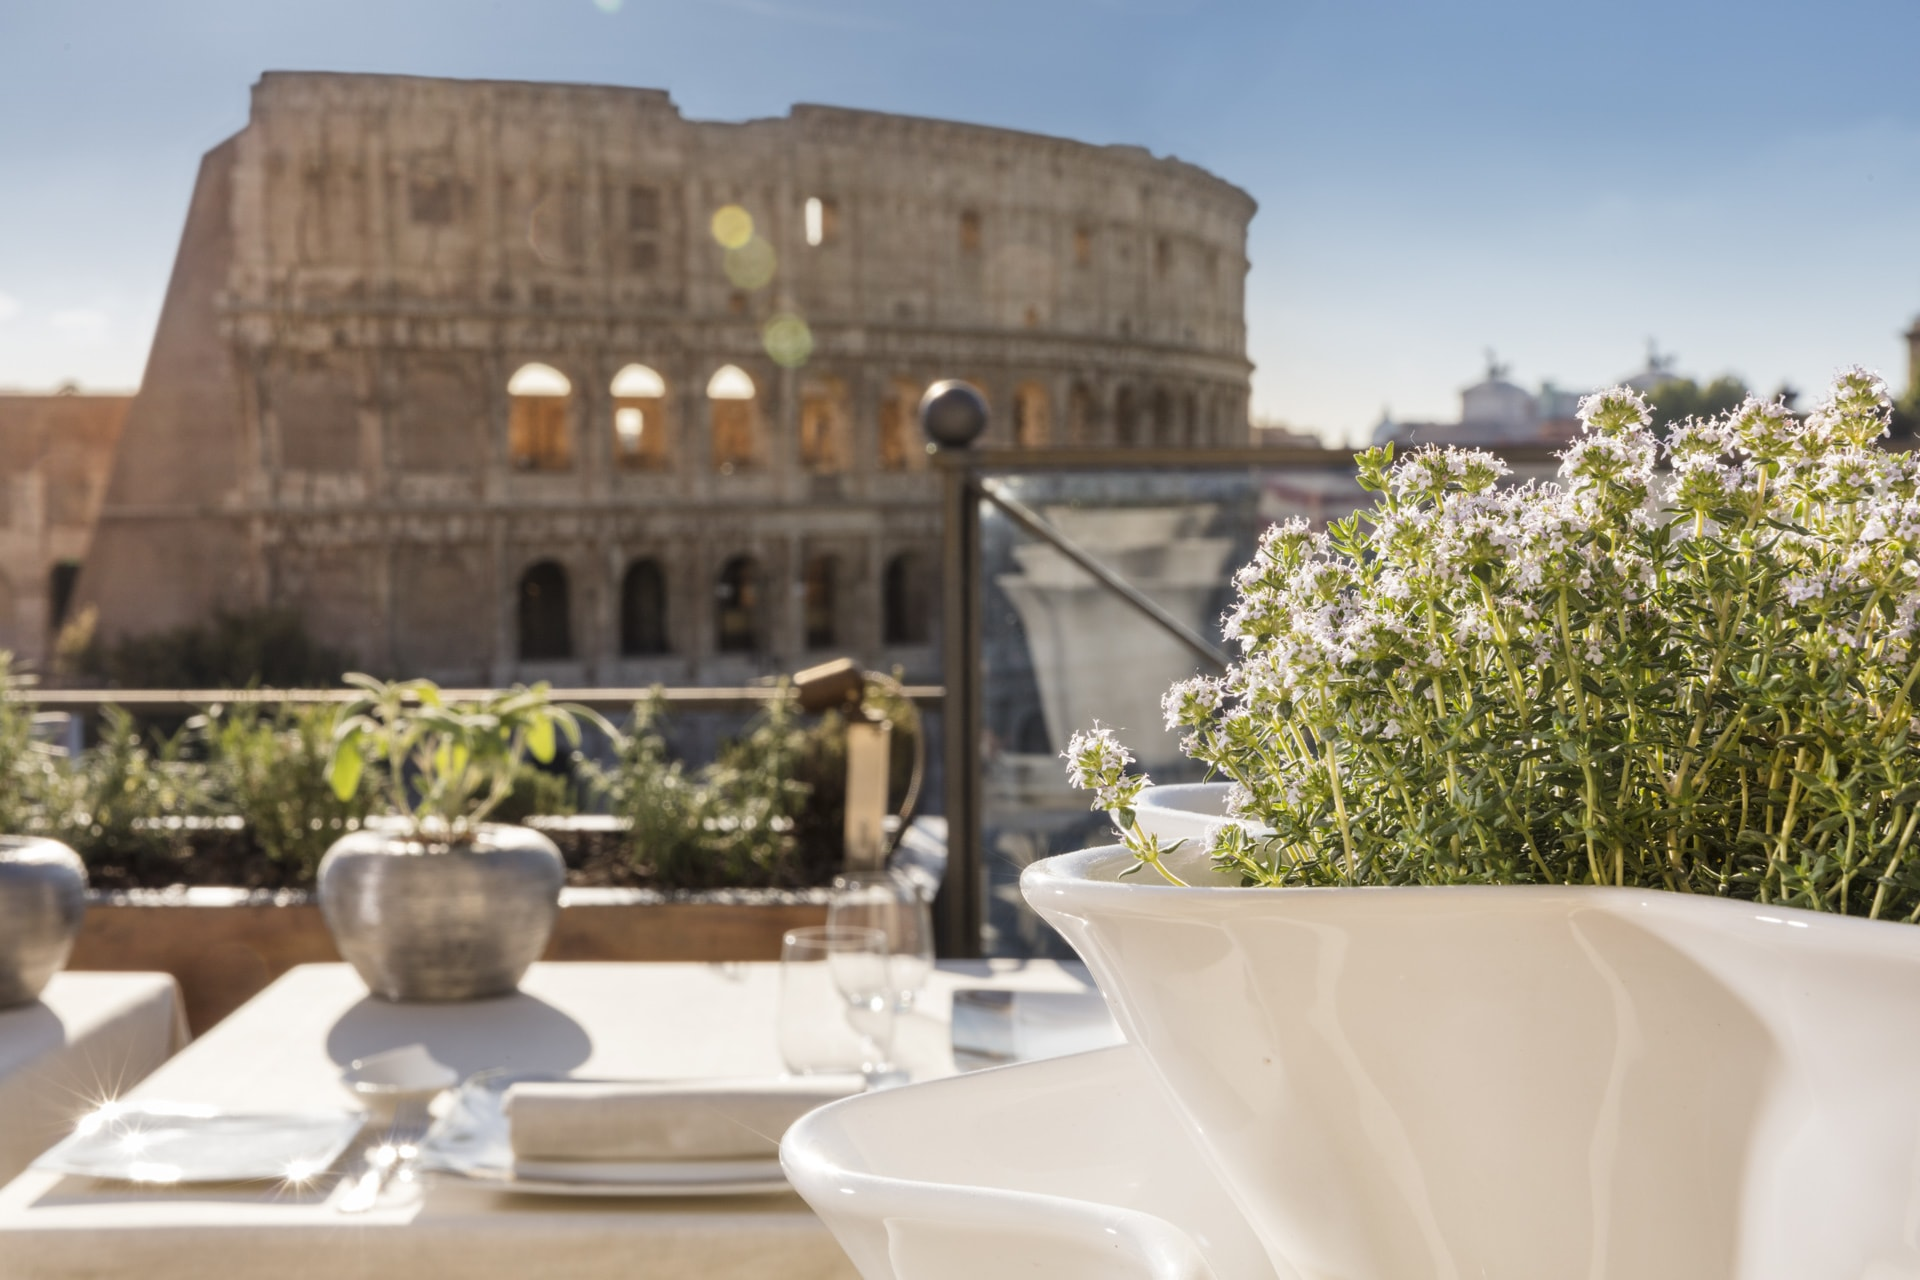 Hotel Palazzo Manfredi: luxury in the heart of Rome